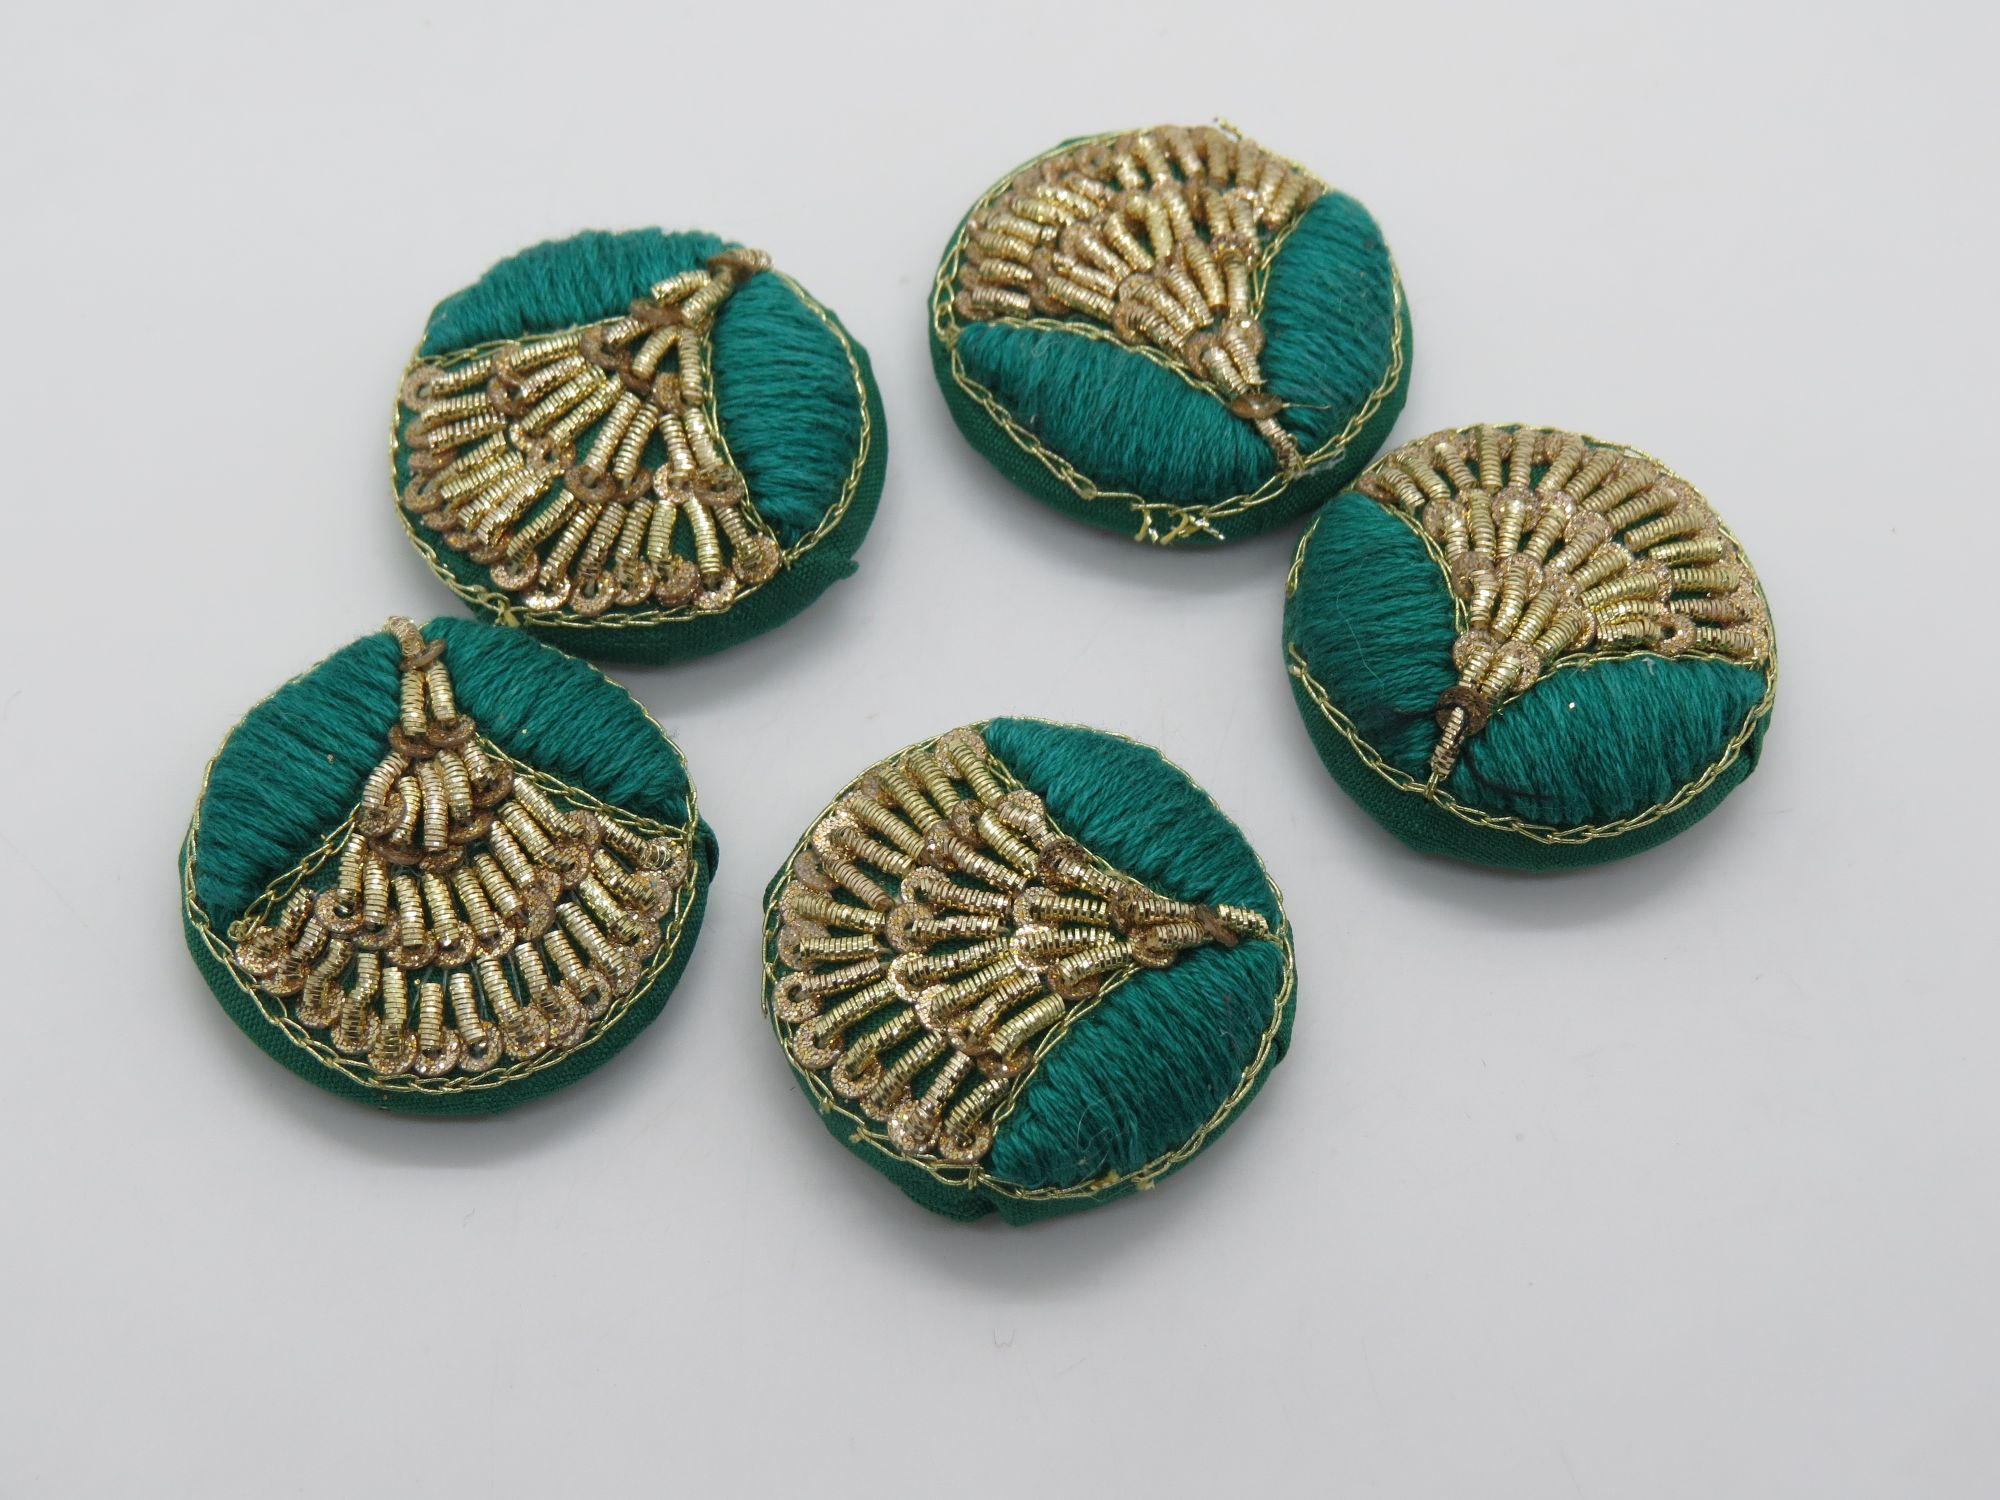 Hand Thred Tikki Zardozi work Embellishment Button Indian Fancy Zari Zardozi Bridesmaids Design Decorative Hand Crafted Fabric Thread Work Sewing Buttons